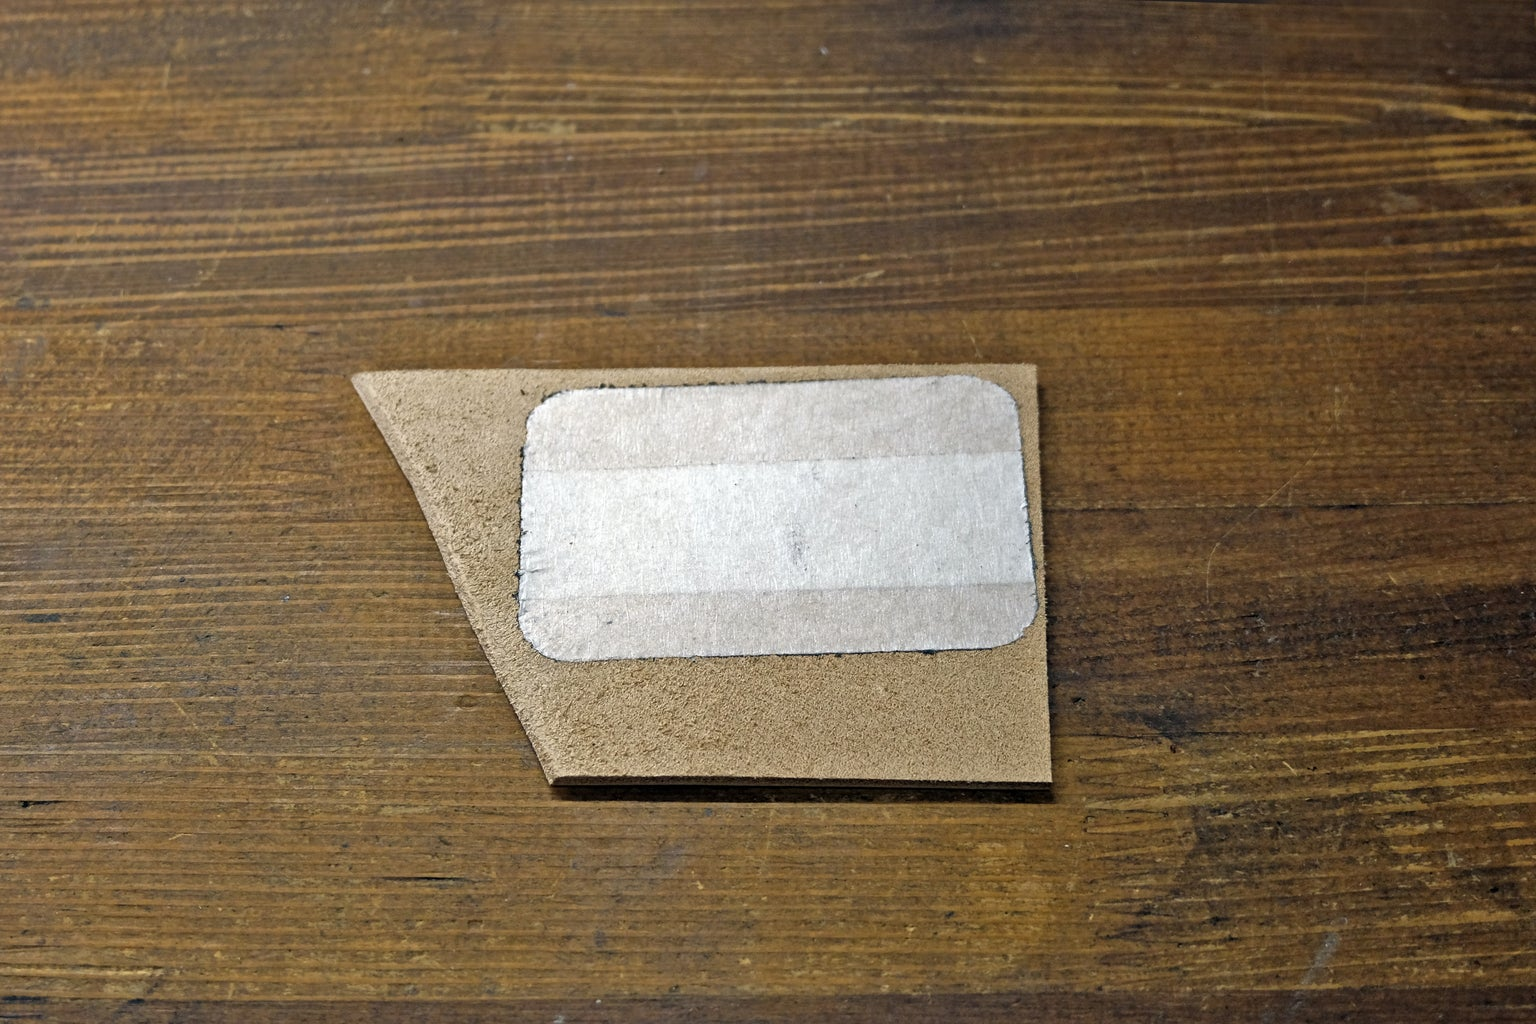 Make a Blank Insert of Leather